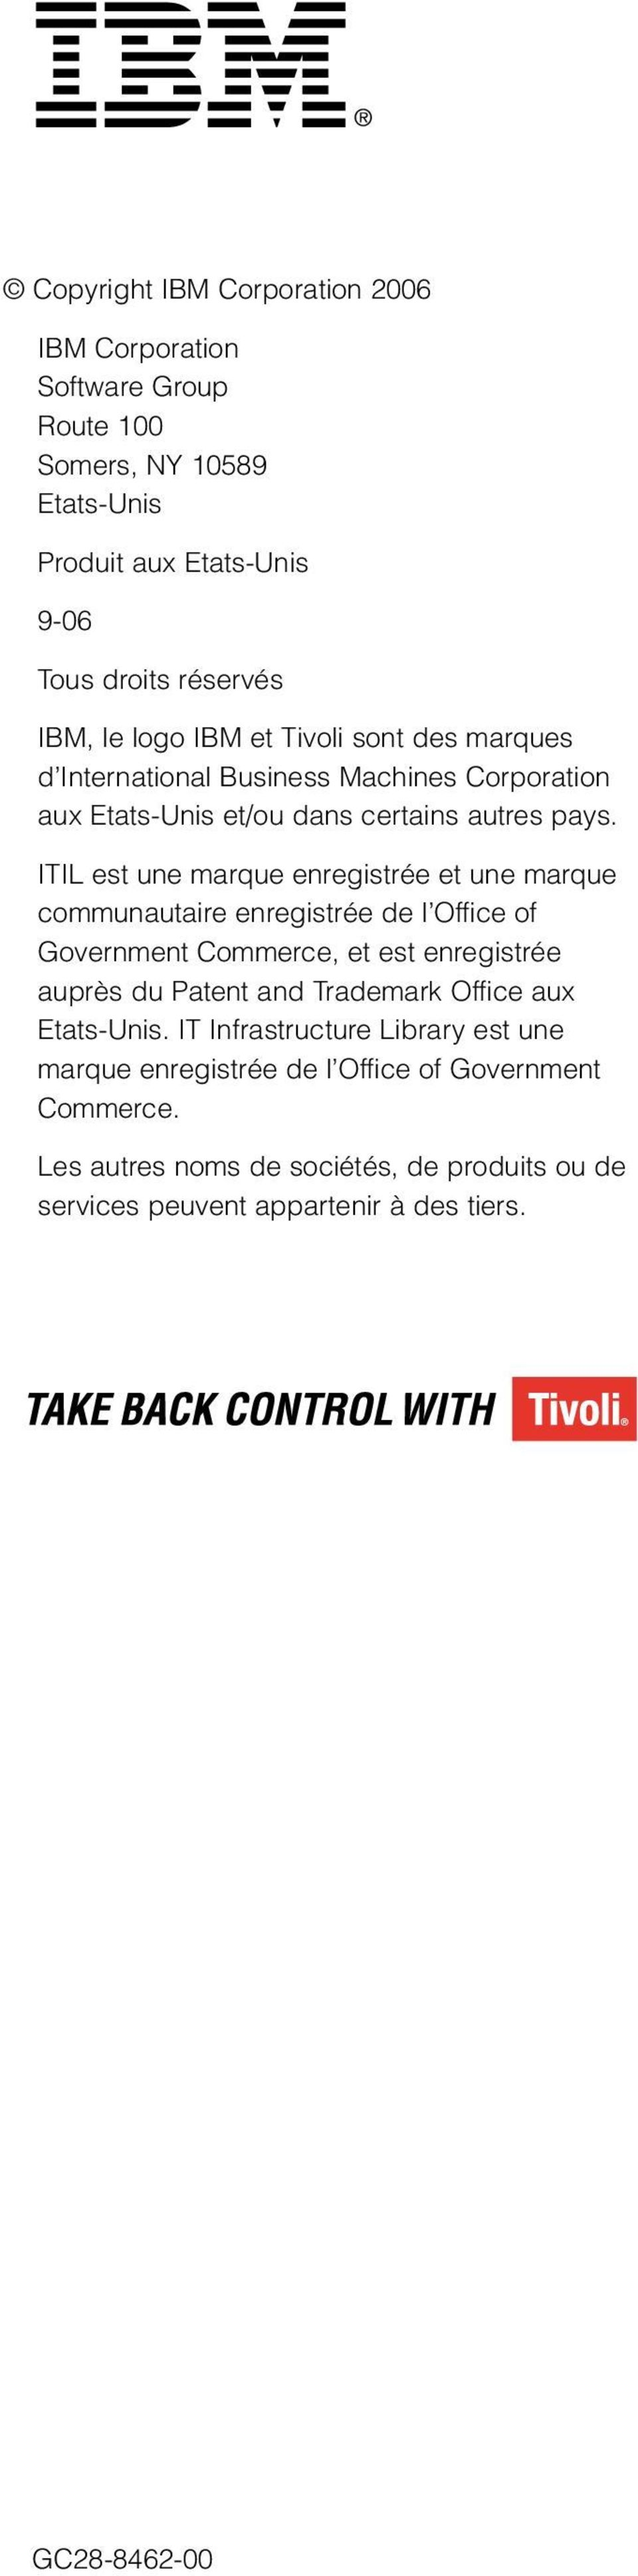 ITIL est une marque enregistrée et une marque communautaire enregistrée de l Office of Government Commerce, et est enregistrée auprès du Patent and Trademark Office